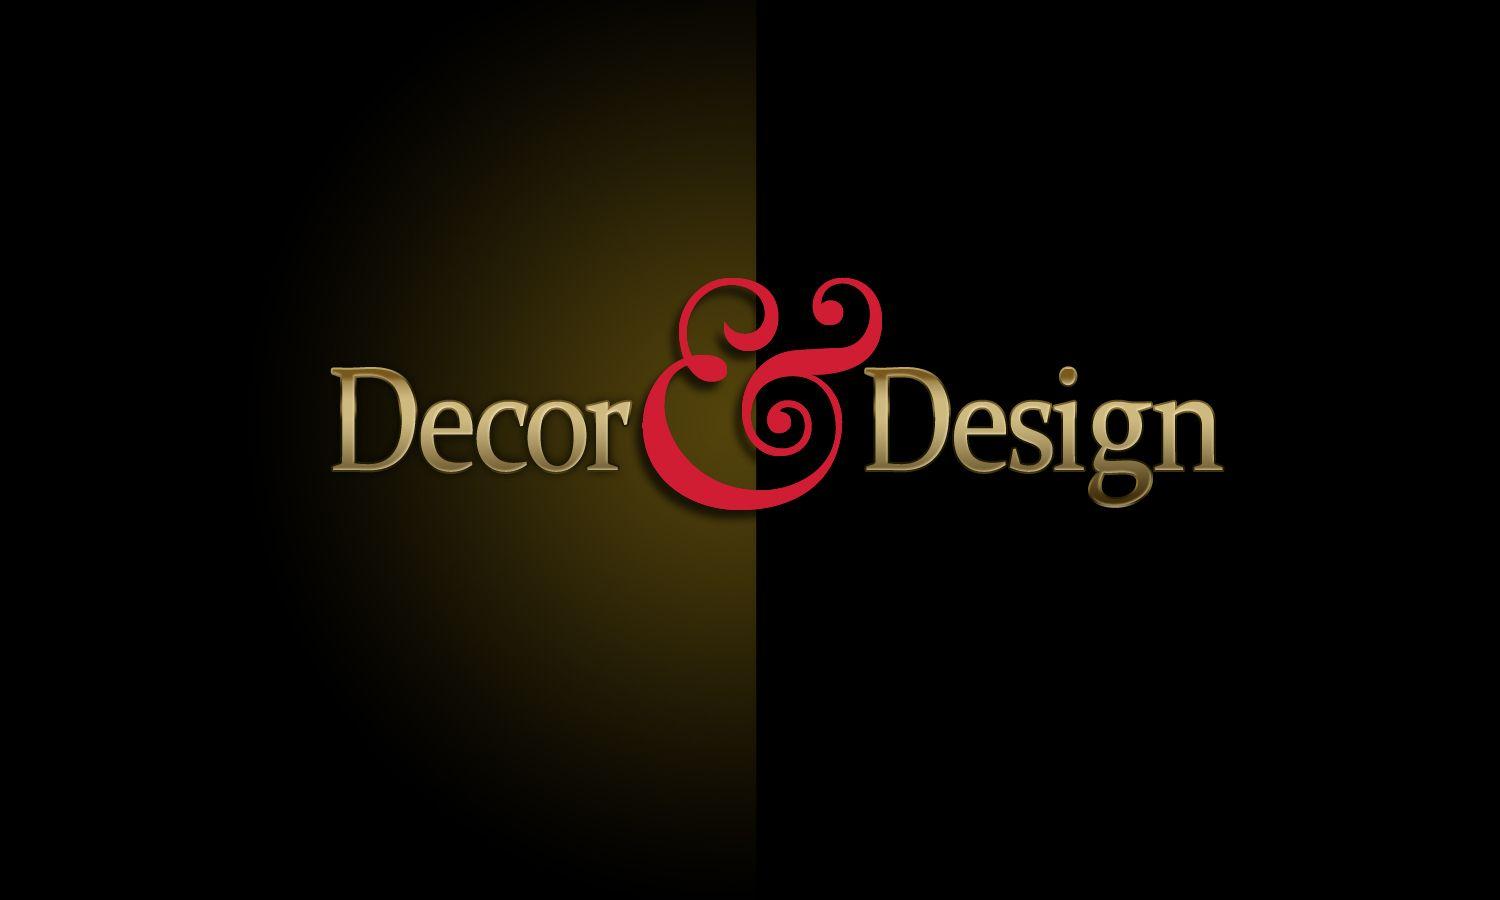 interior design business name ideas